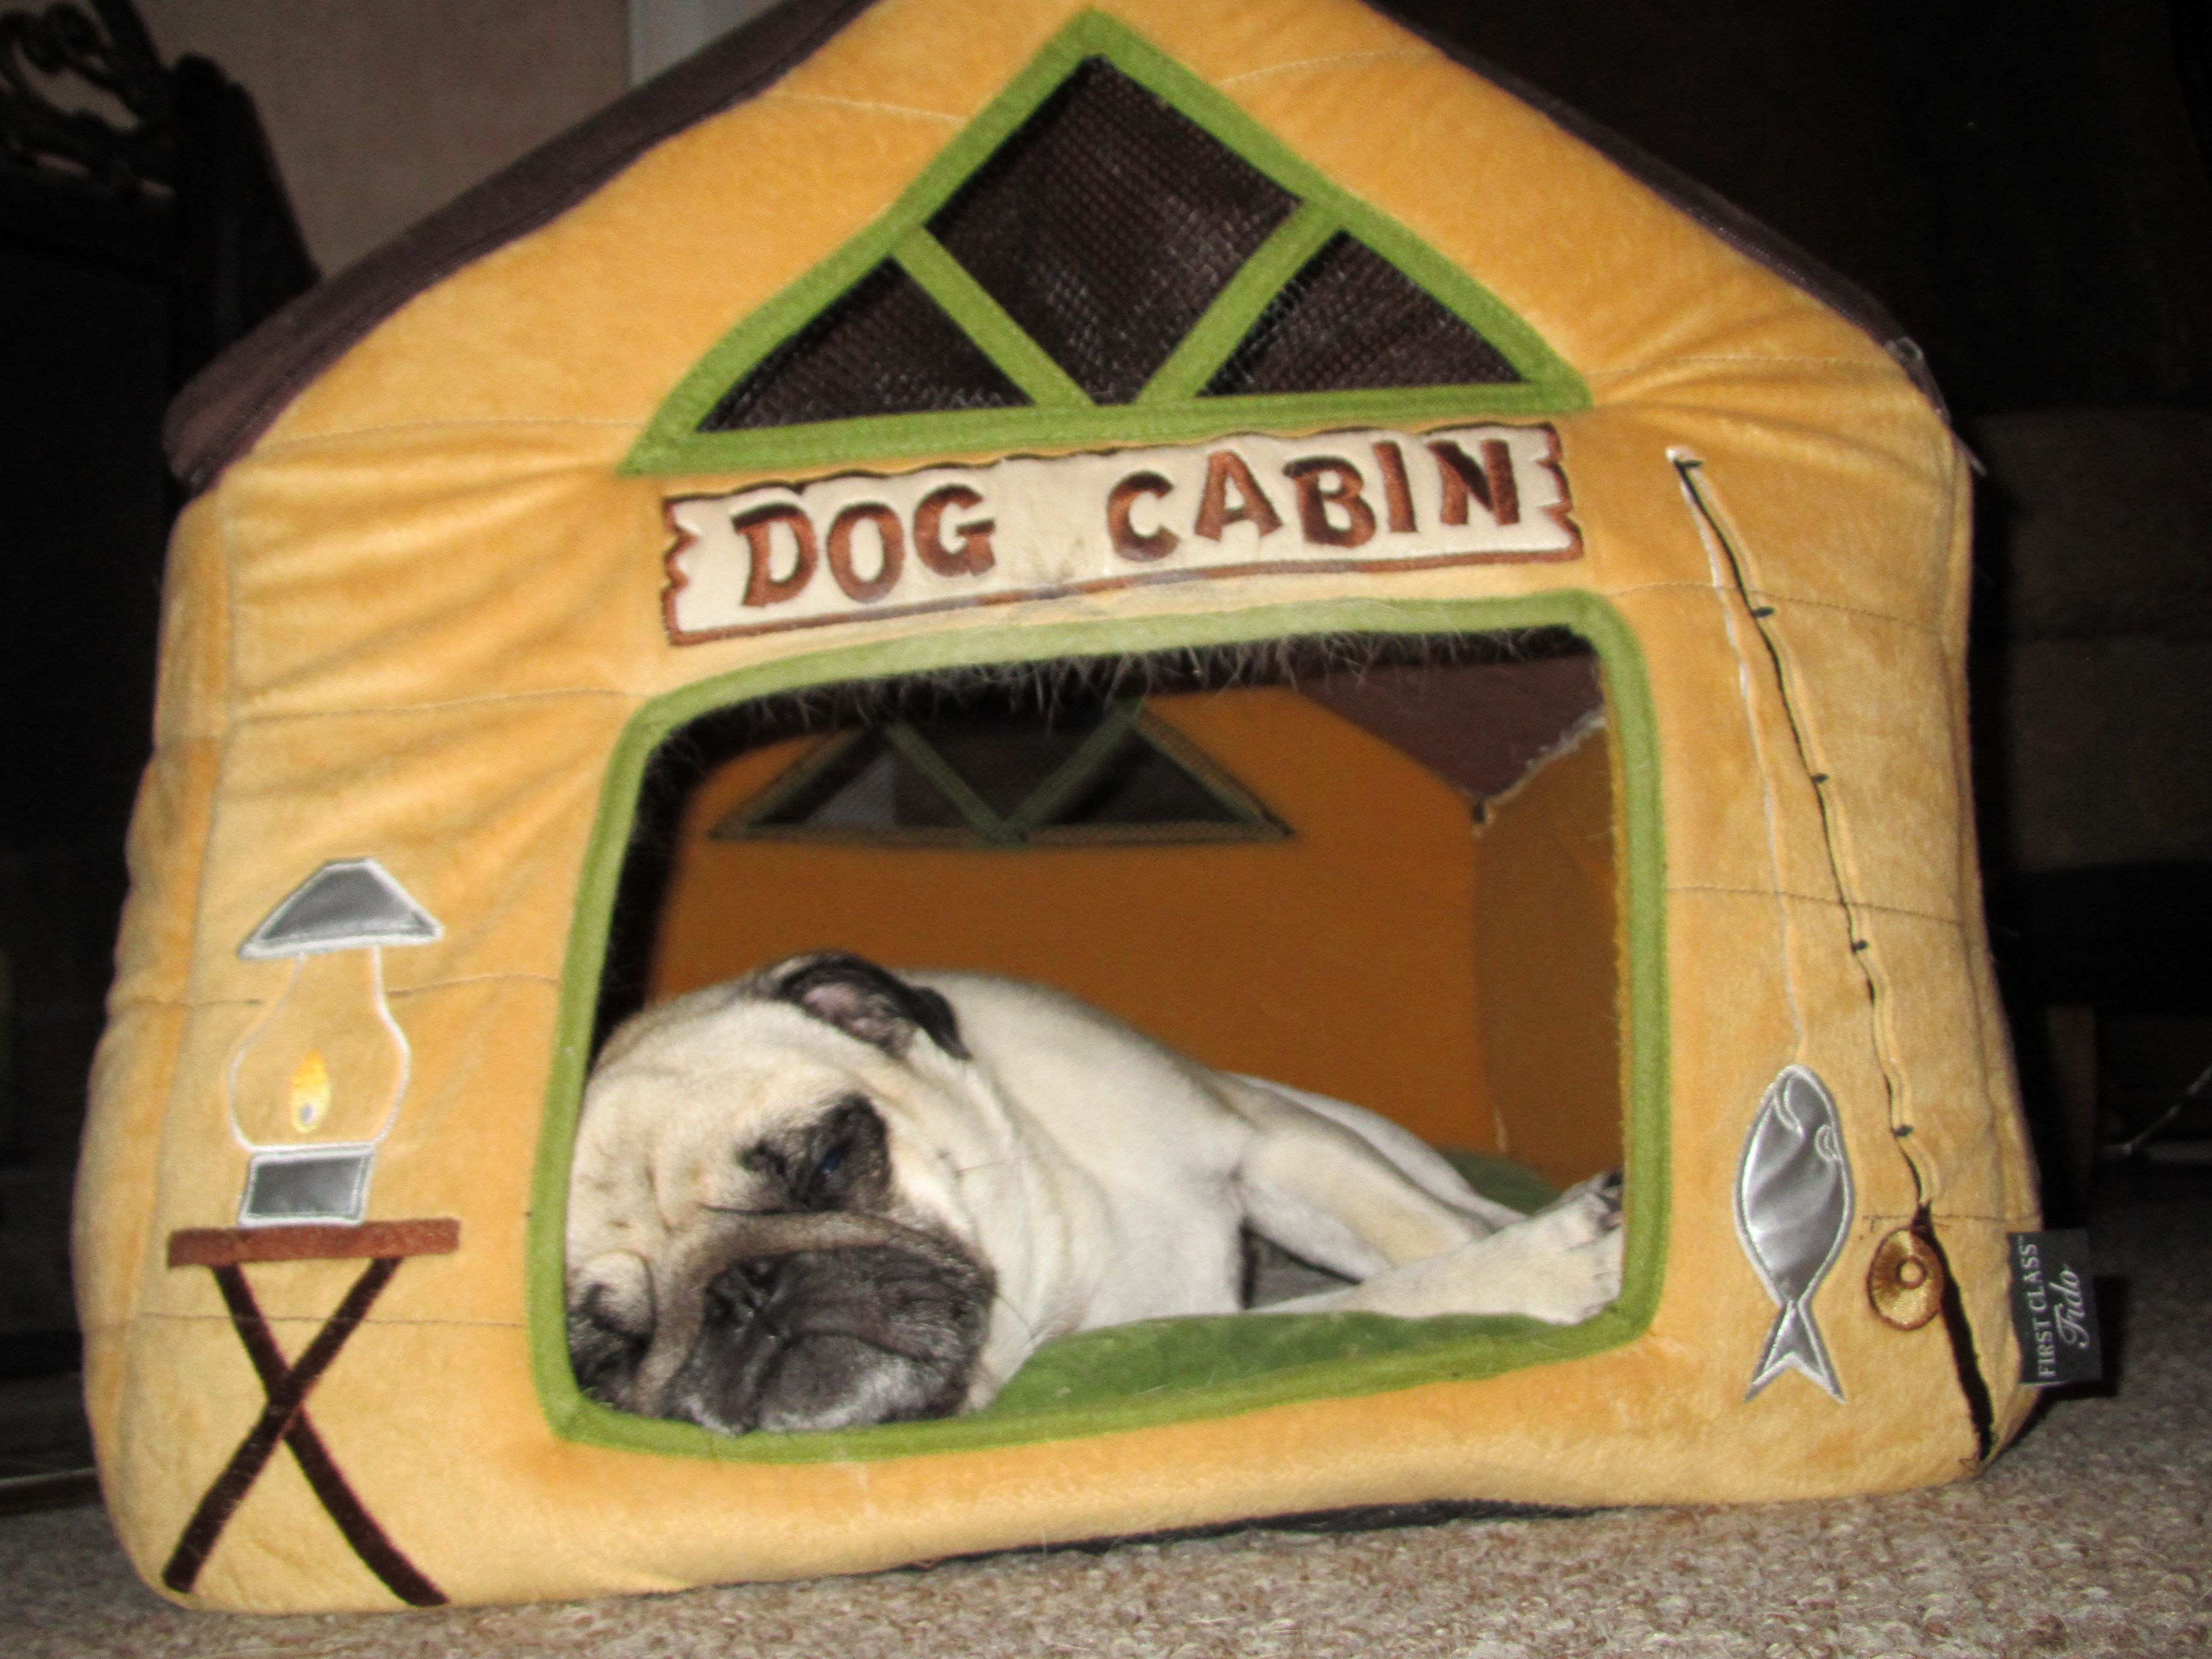 Spanky taking a snooze in his Dog Cabin.